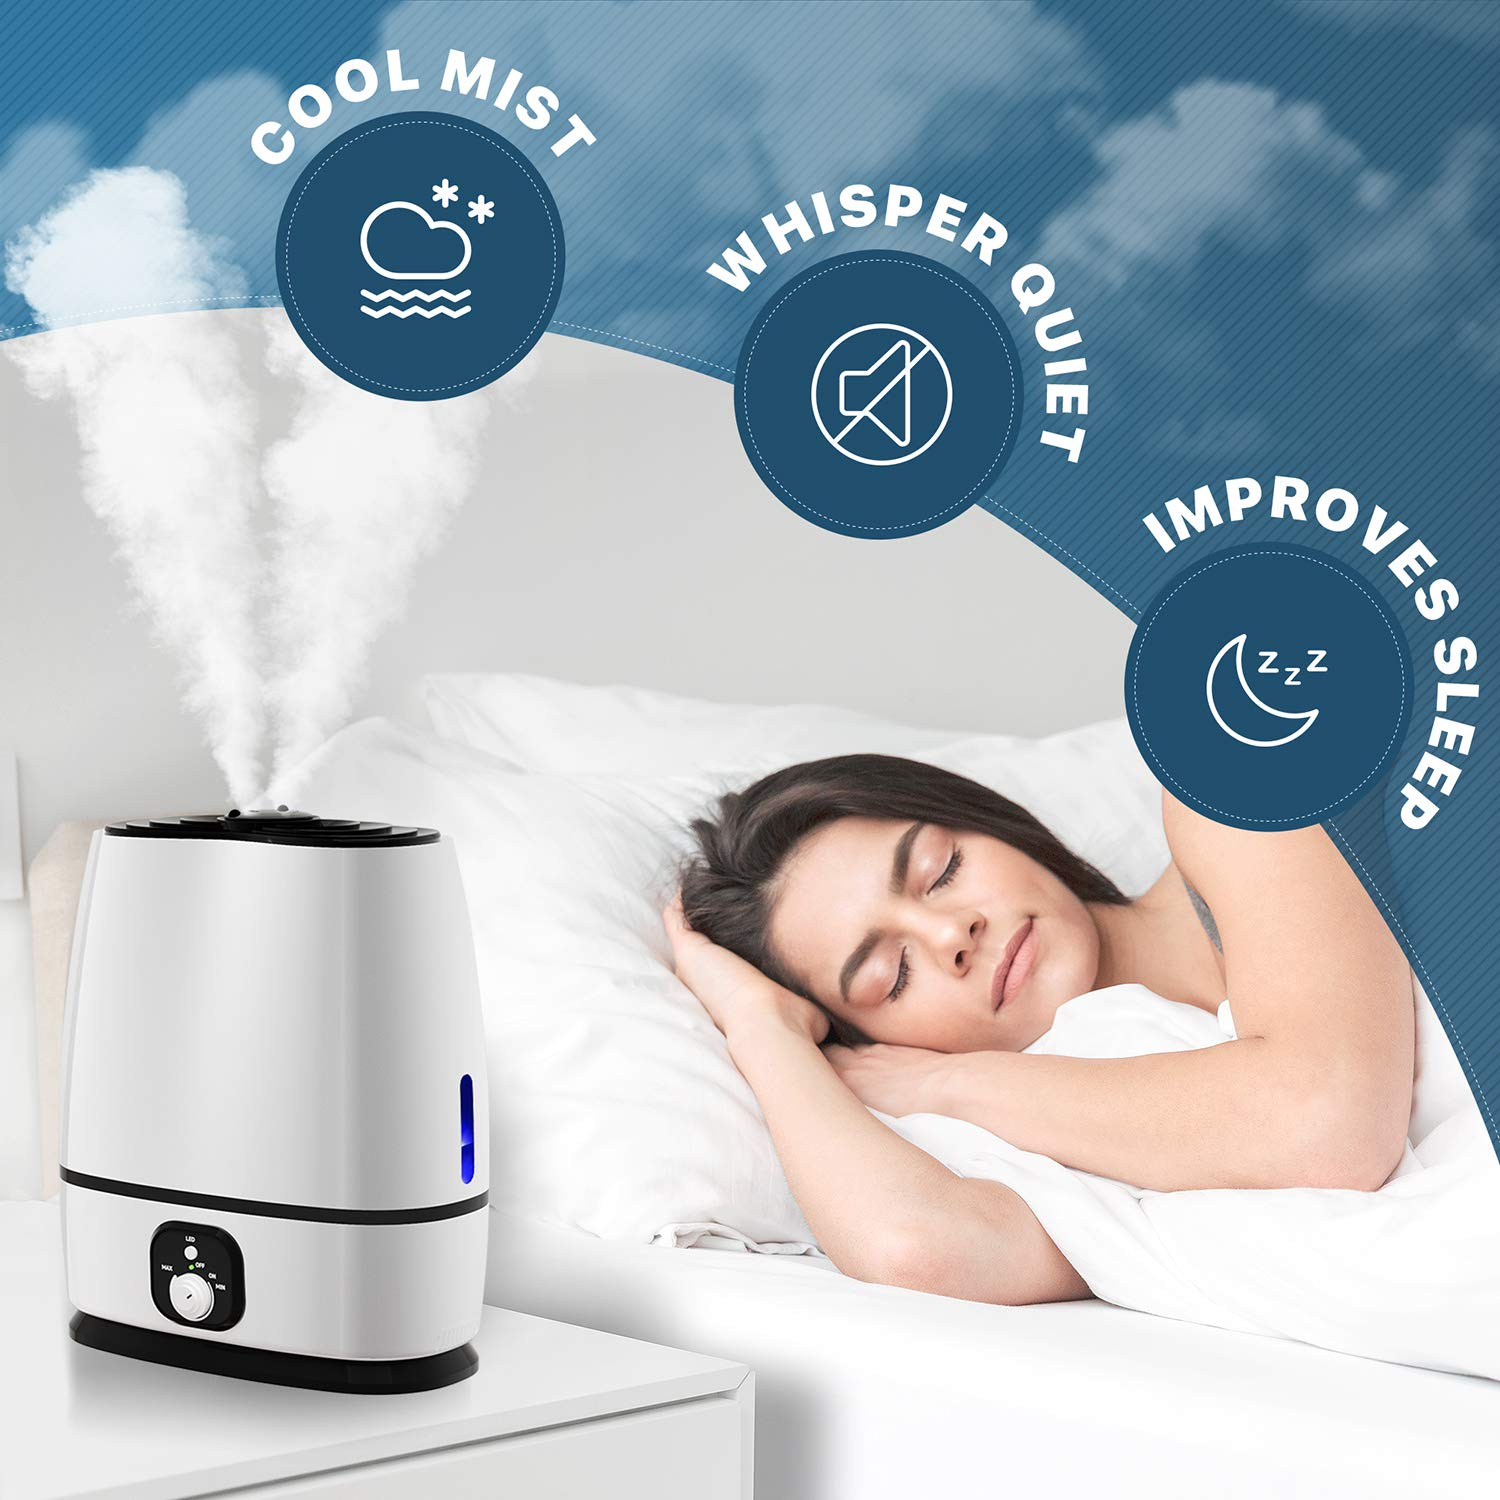 Everlasting Humidifier Review